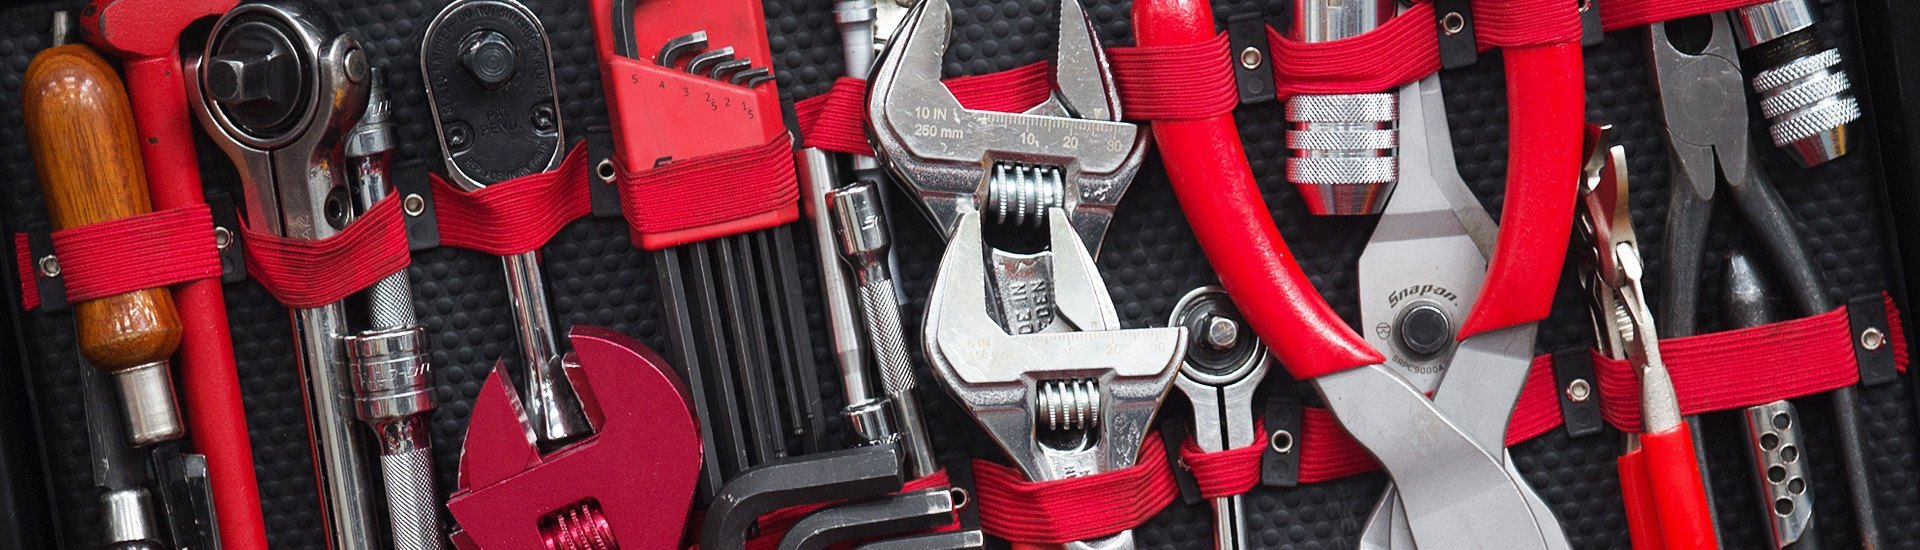 Which Are The Best Under-$200 Tool Sets For My Home Workshop?